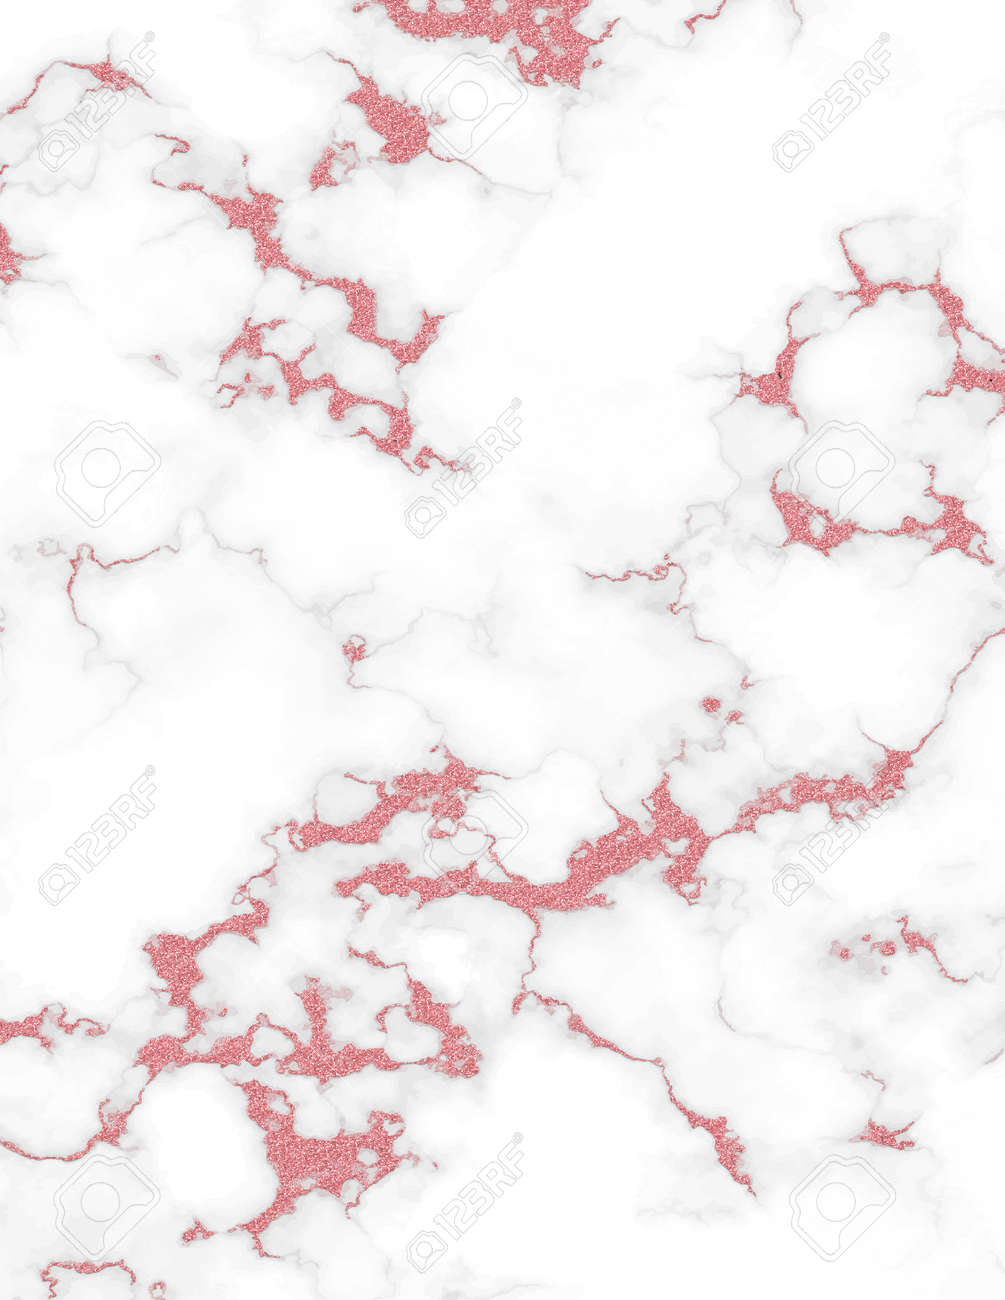 Rose gold white marble and glitter texture backgrounds. - 169697616